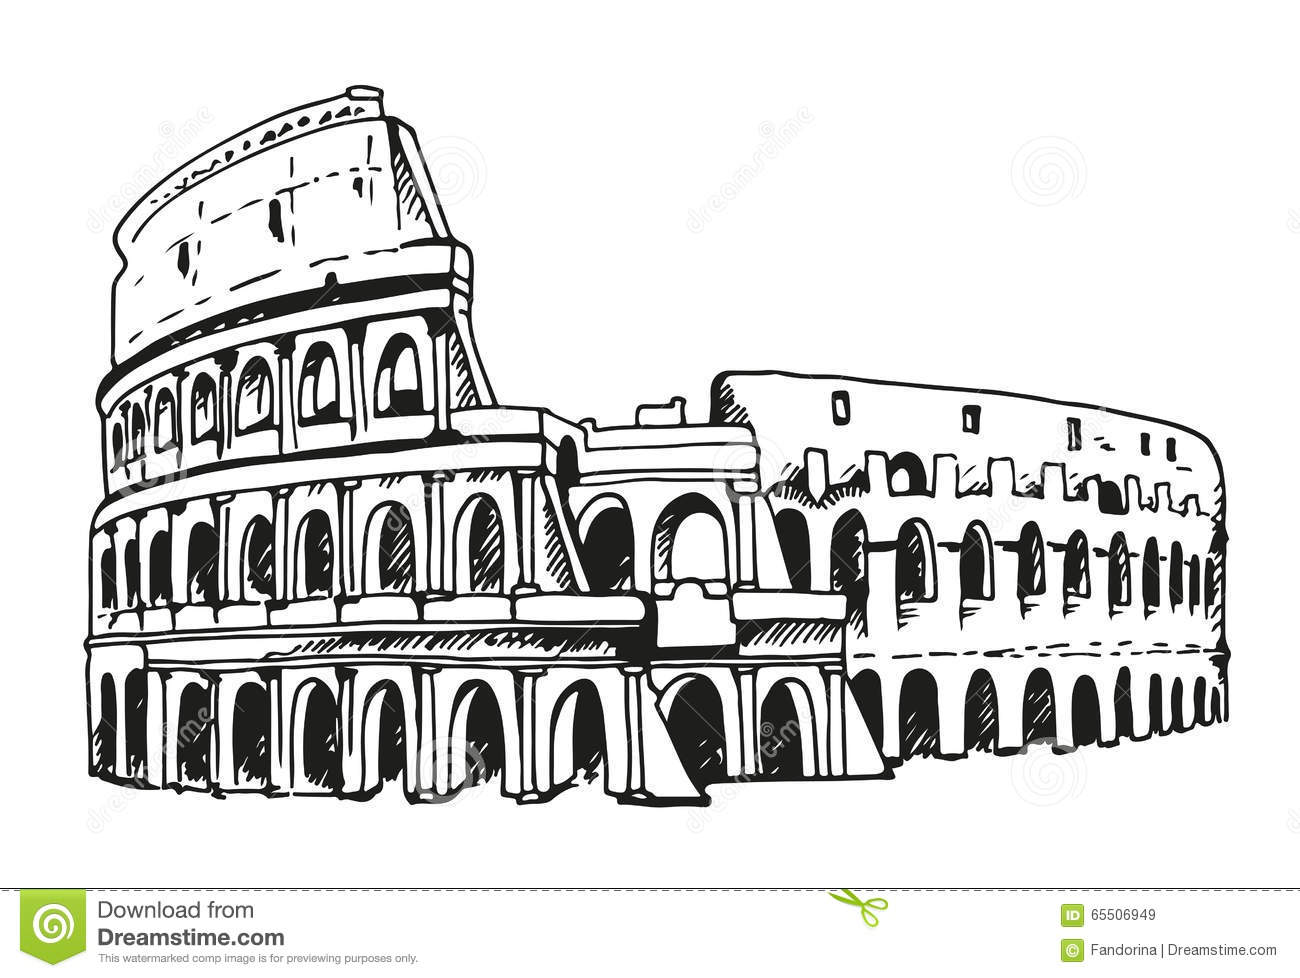 Drawing Of Coliseum Colosseum Illustration In Rome Italy